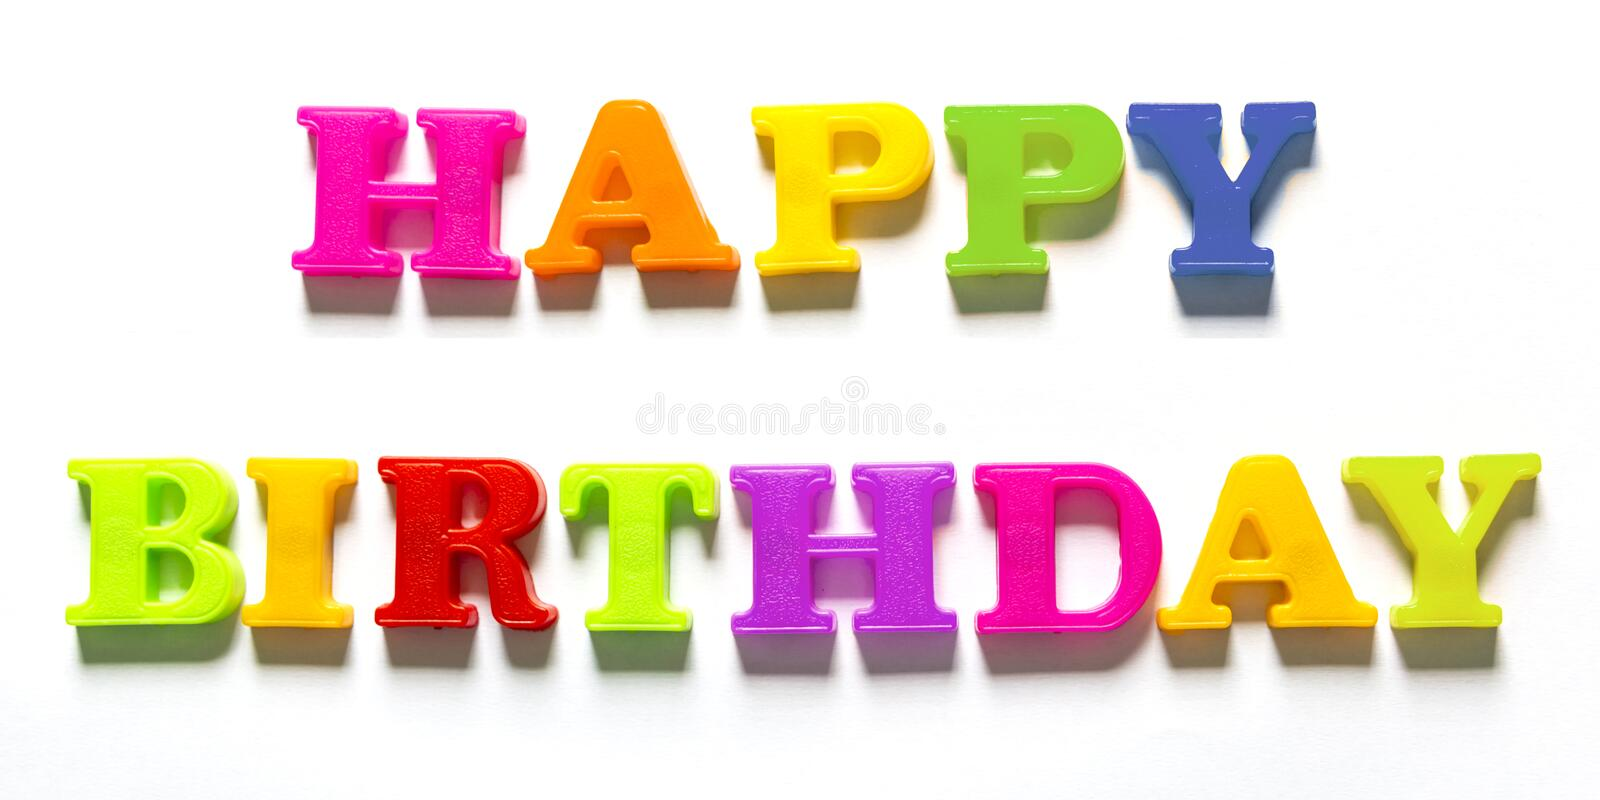 Colourful Happy Birthday Capital Letters in White Background. Image of happy birthday words made from colourful plastic letter magnets isolated in white royalty free stock photo